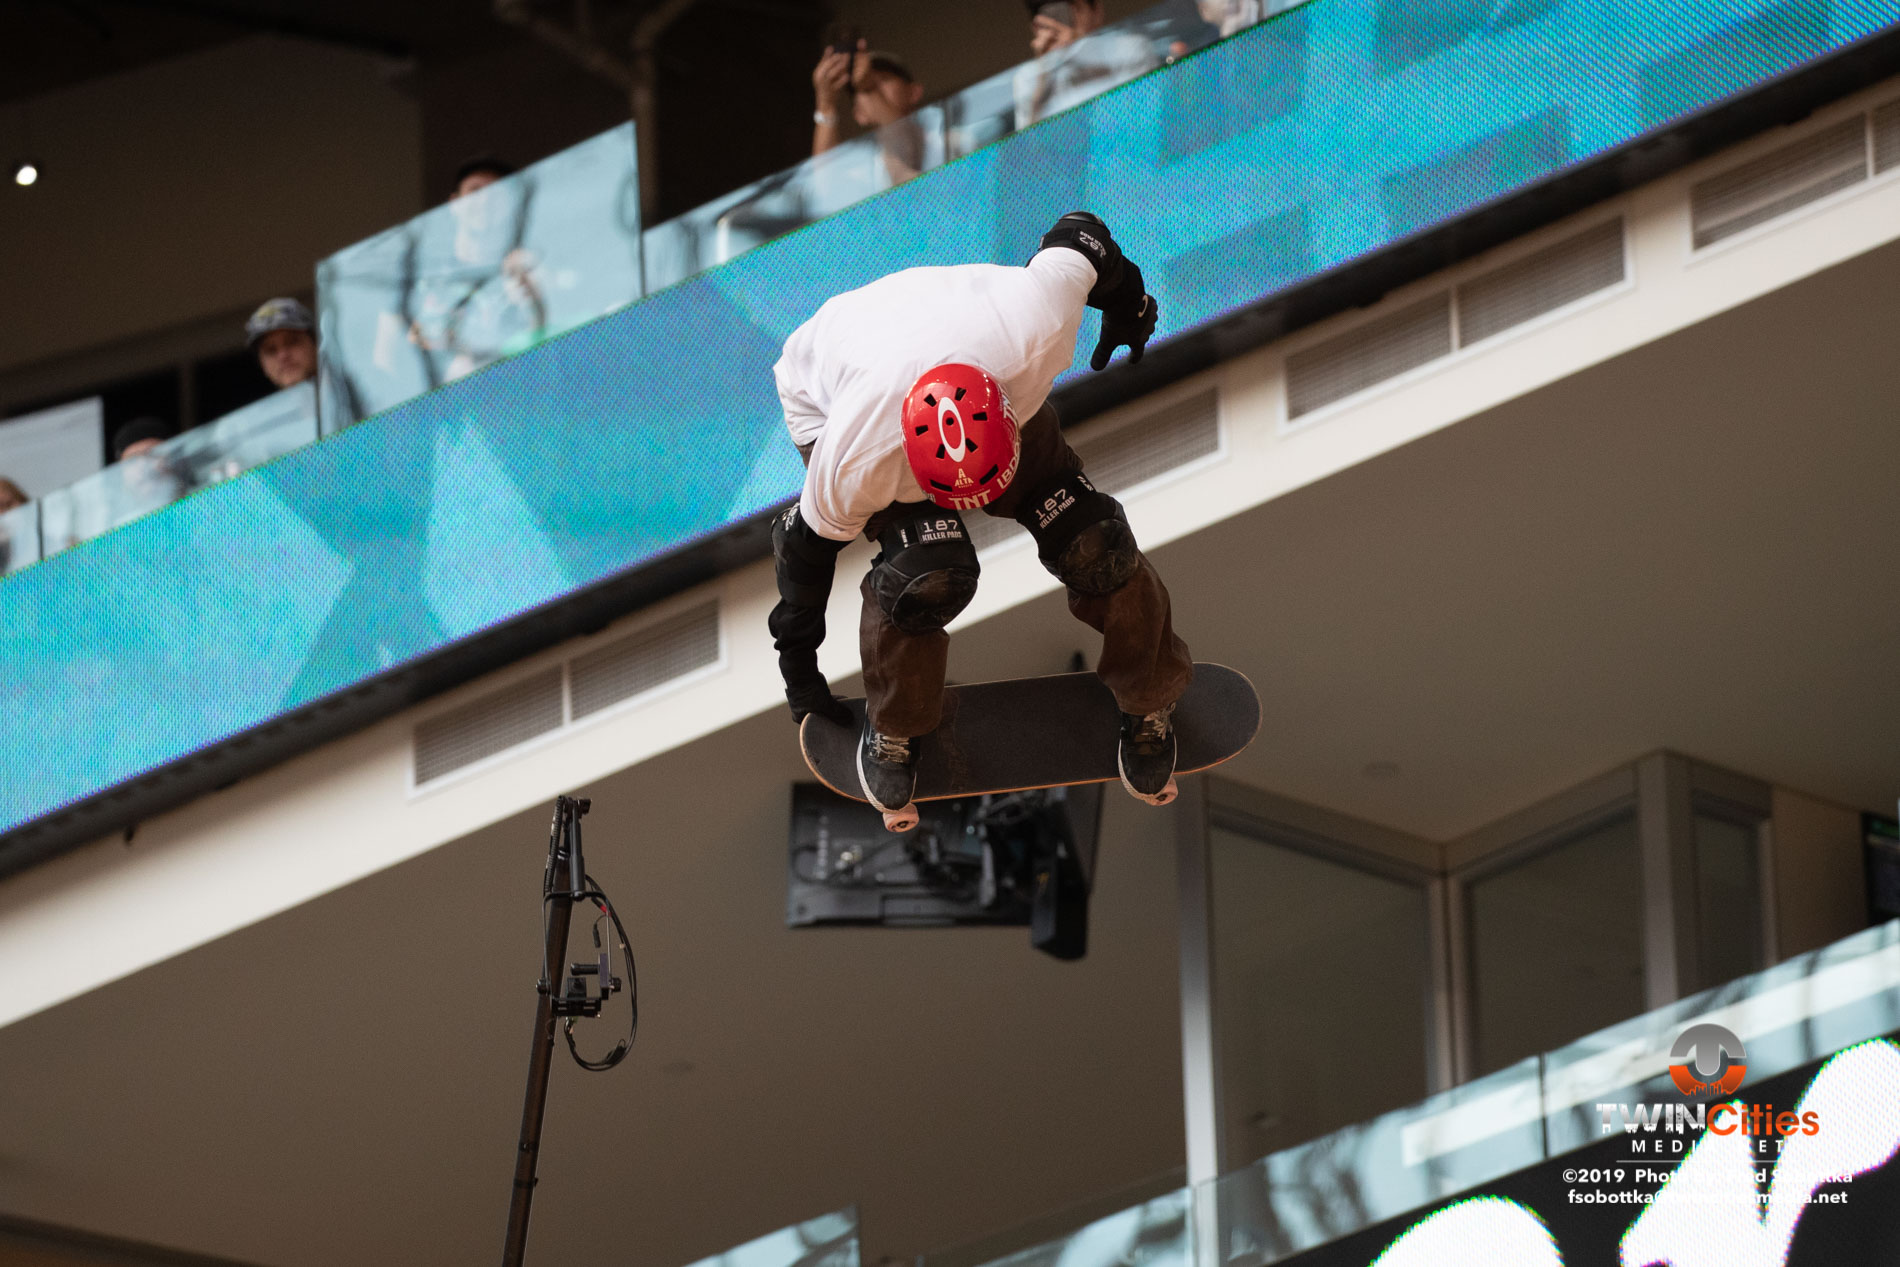 The-Real-Cost-Skateboard-Big-Air-12